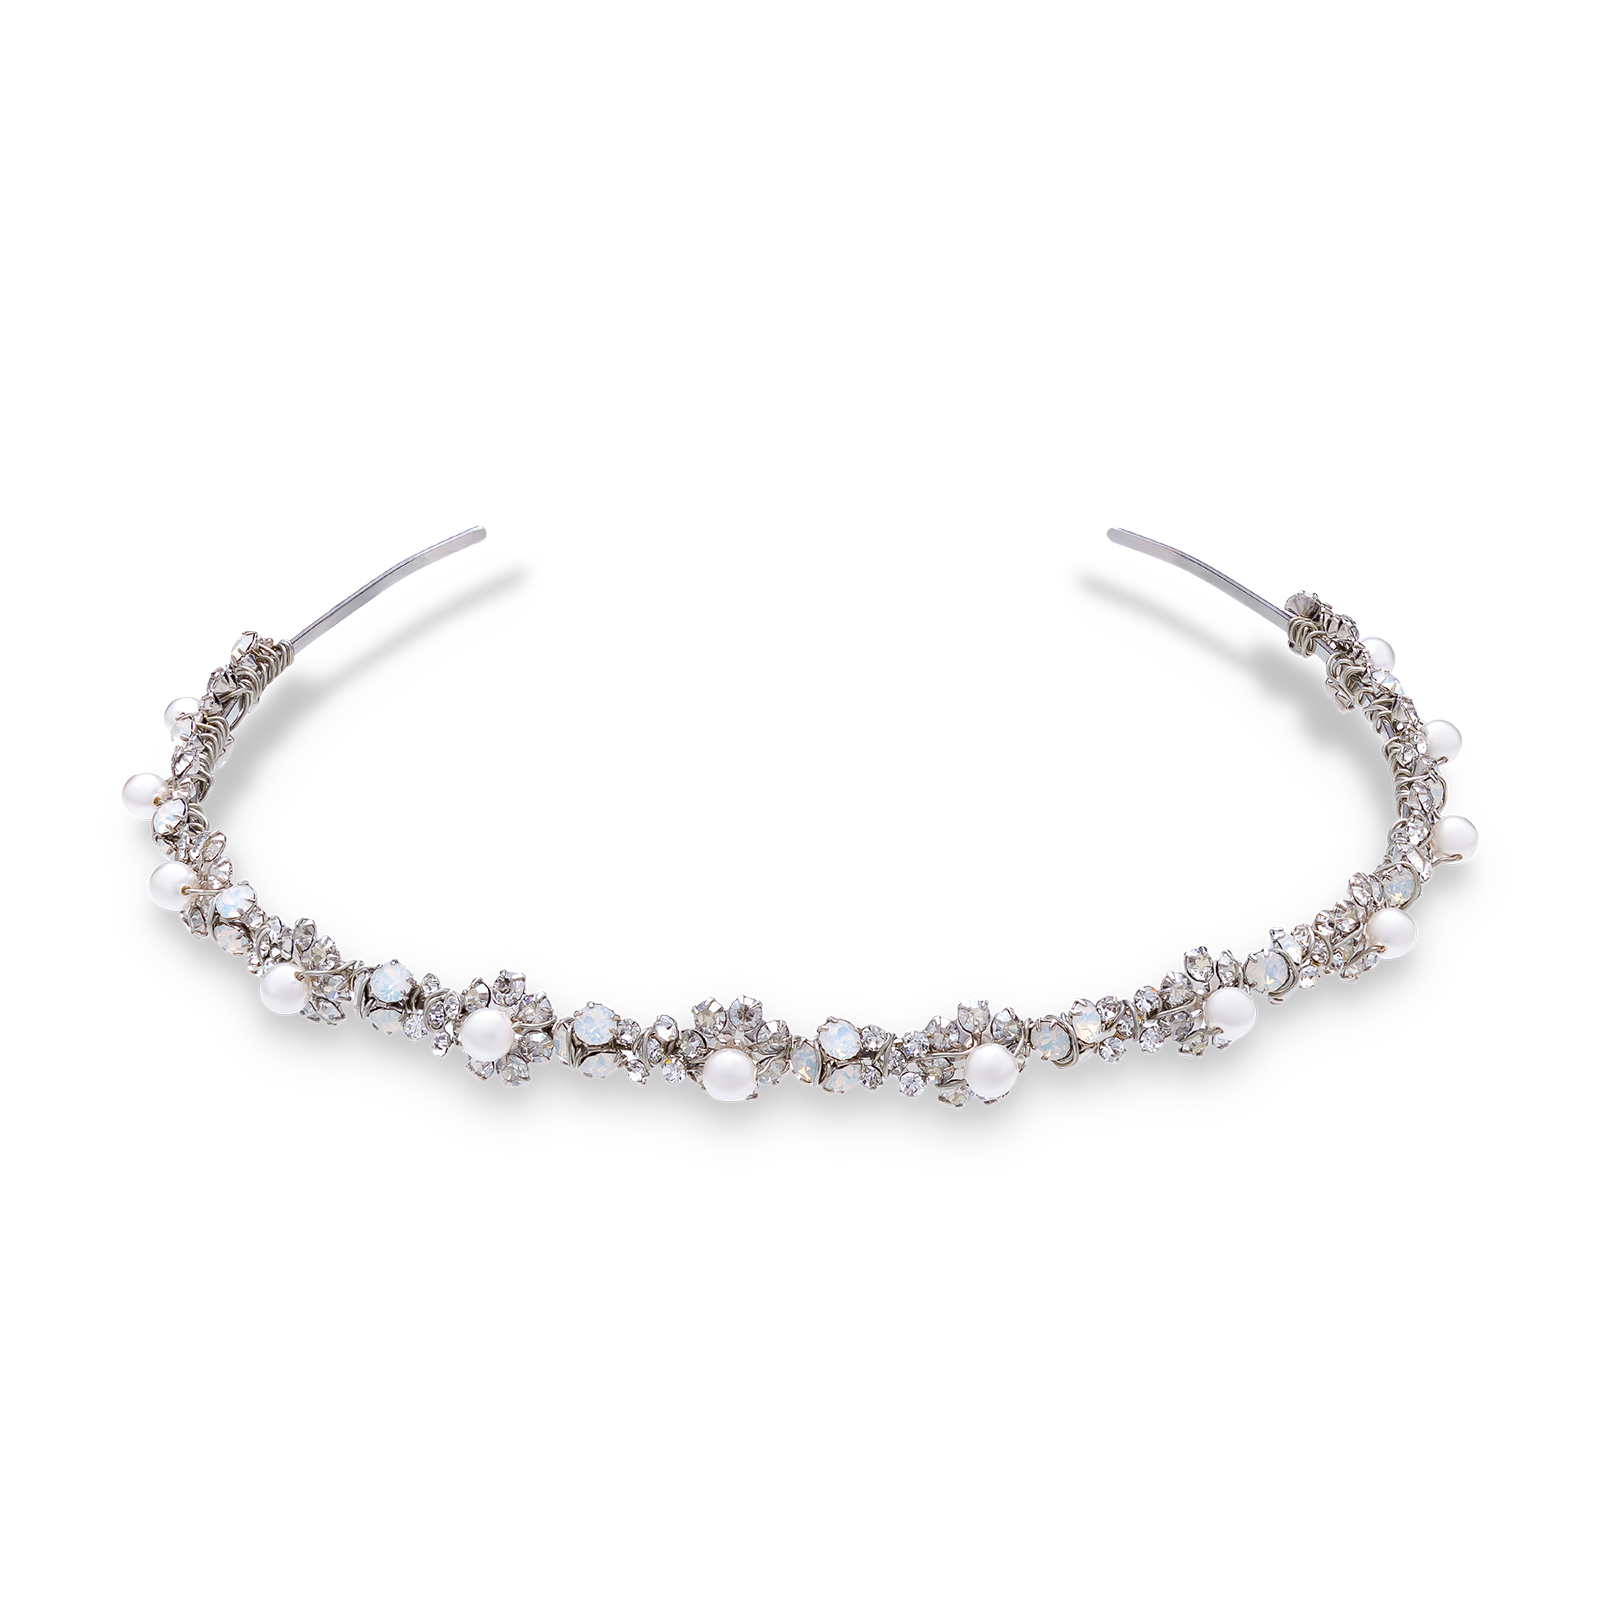 Tiara product photo